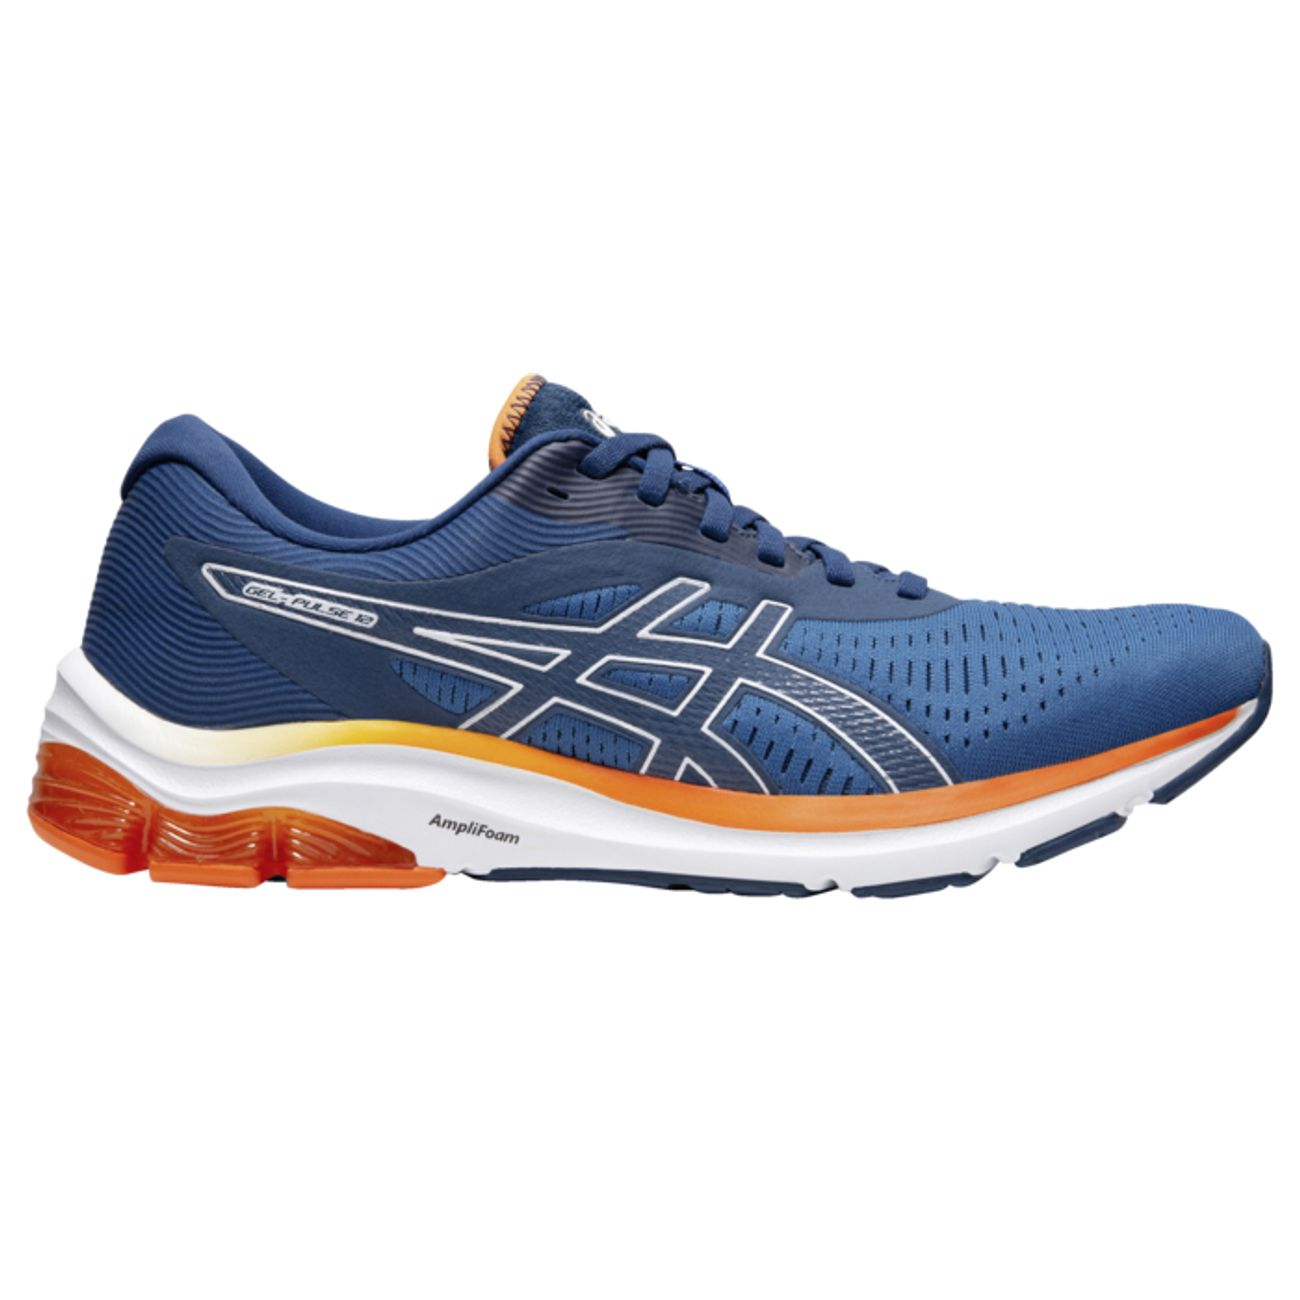 CHAUSSURES BASSES running homme ASICS GEL-PULSE 12 M